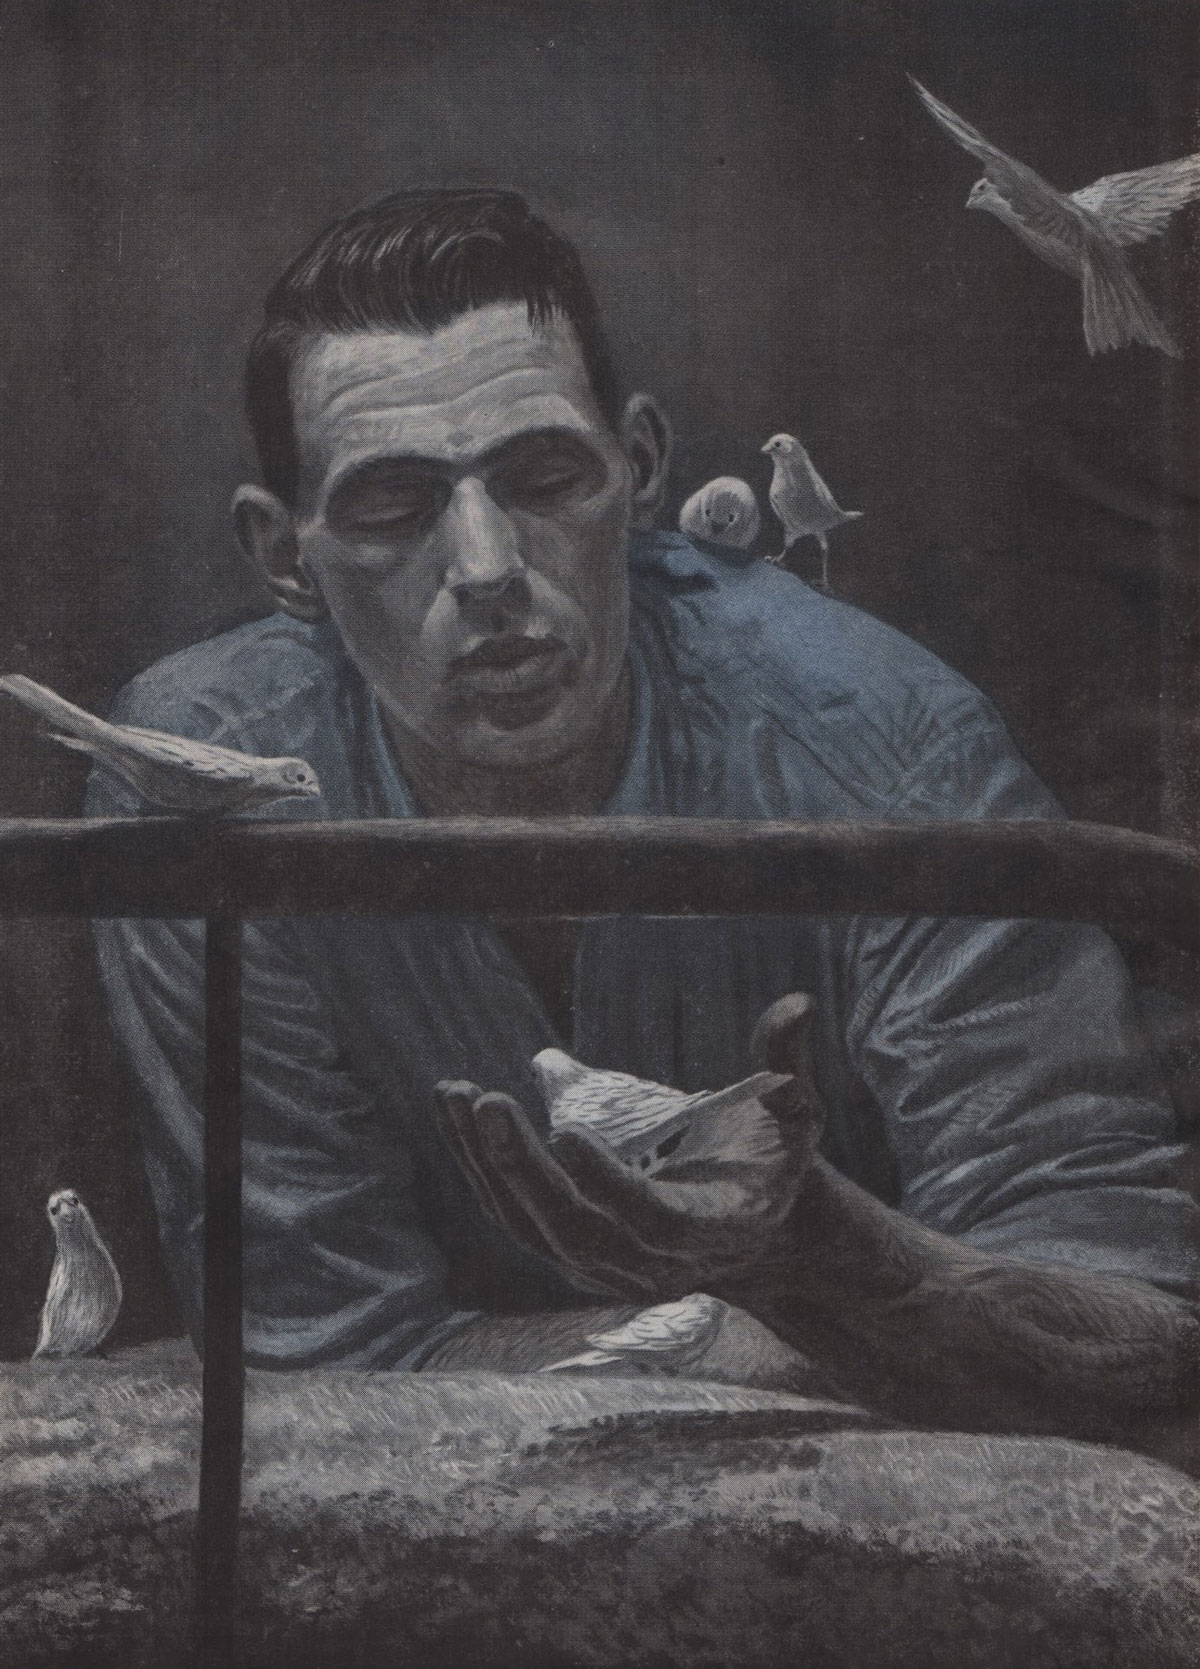 Birdman of Alcatraz Illustration